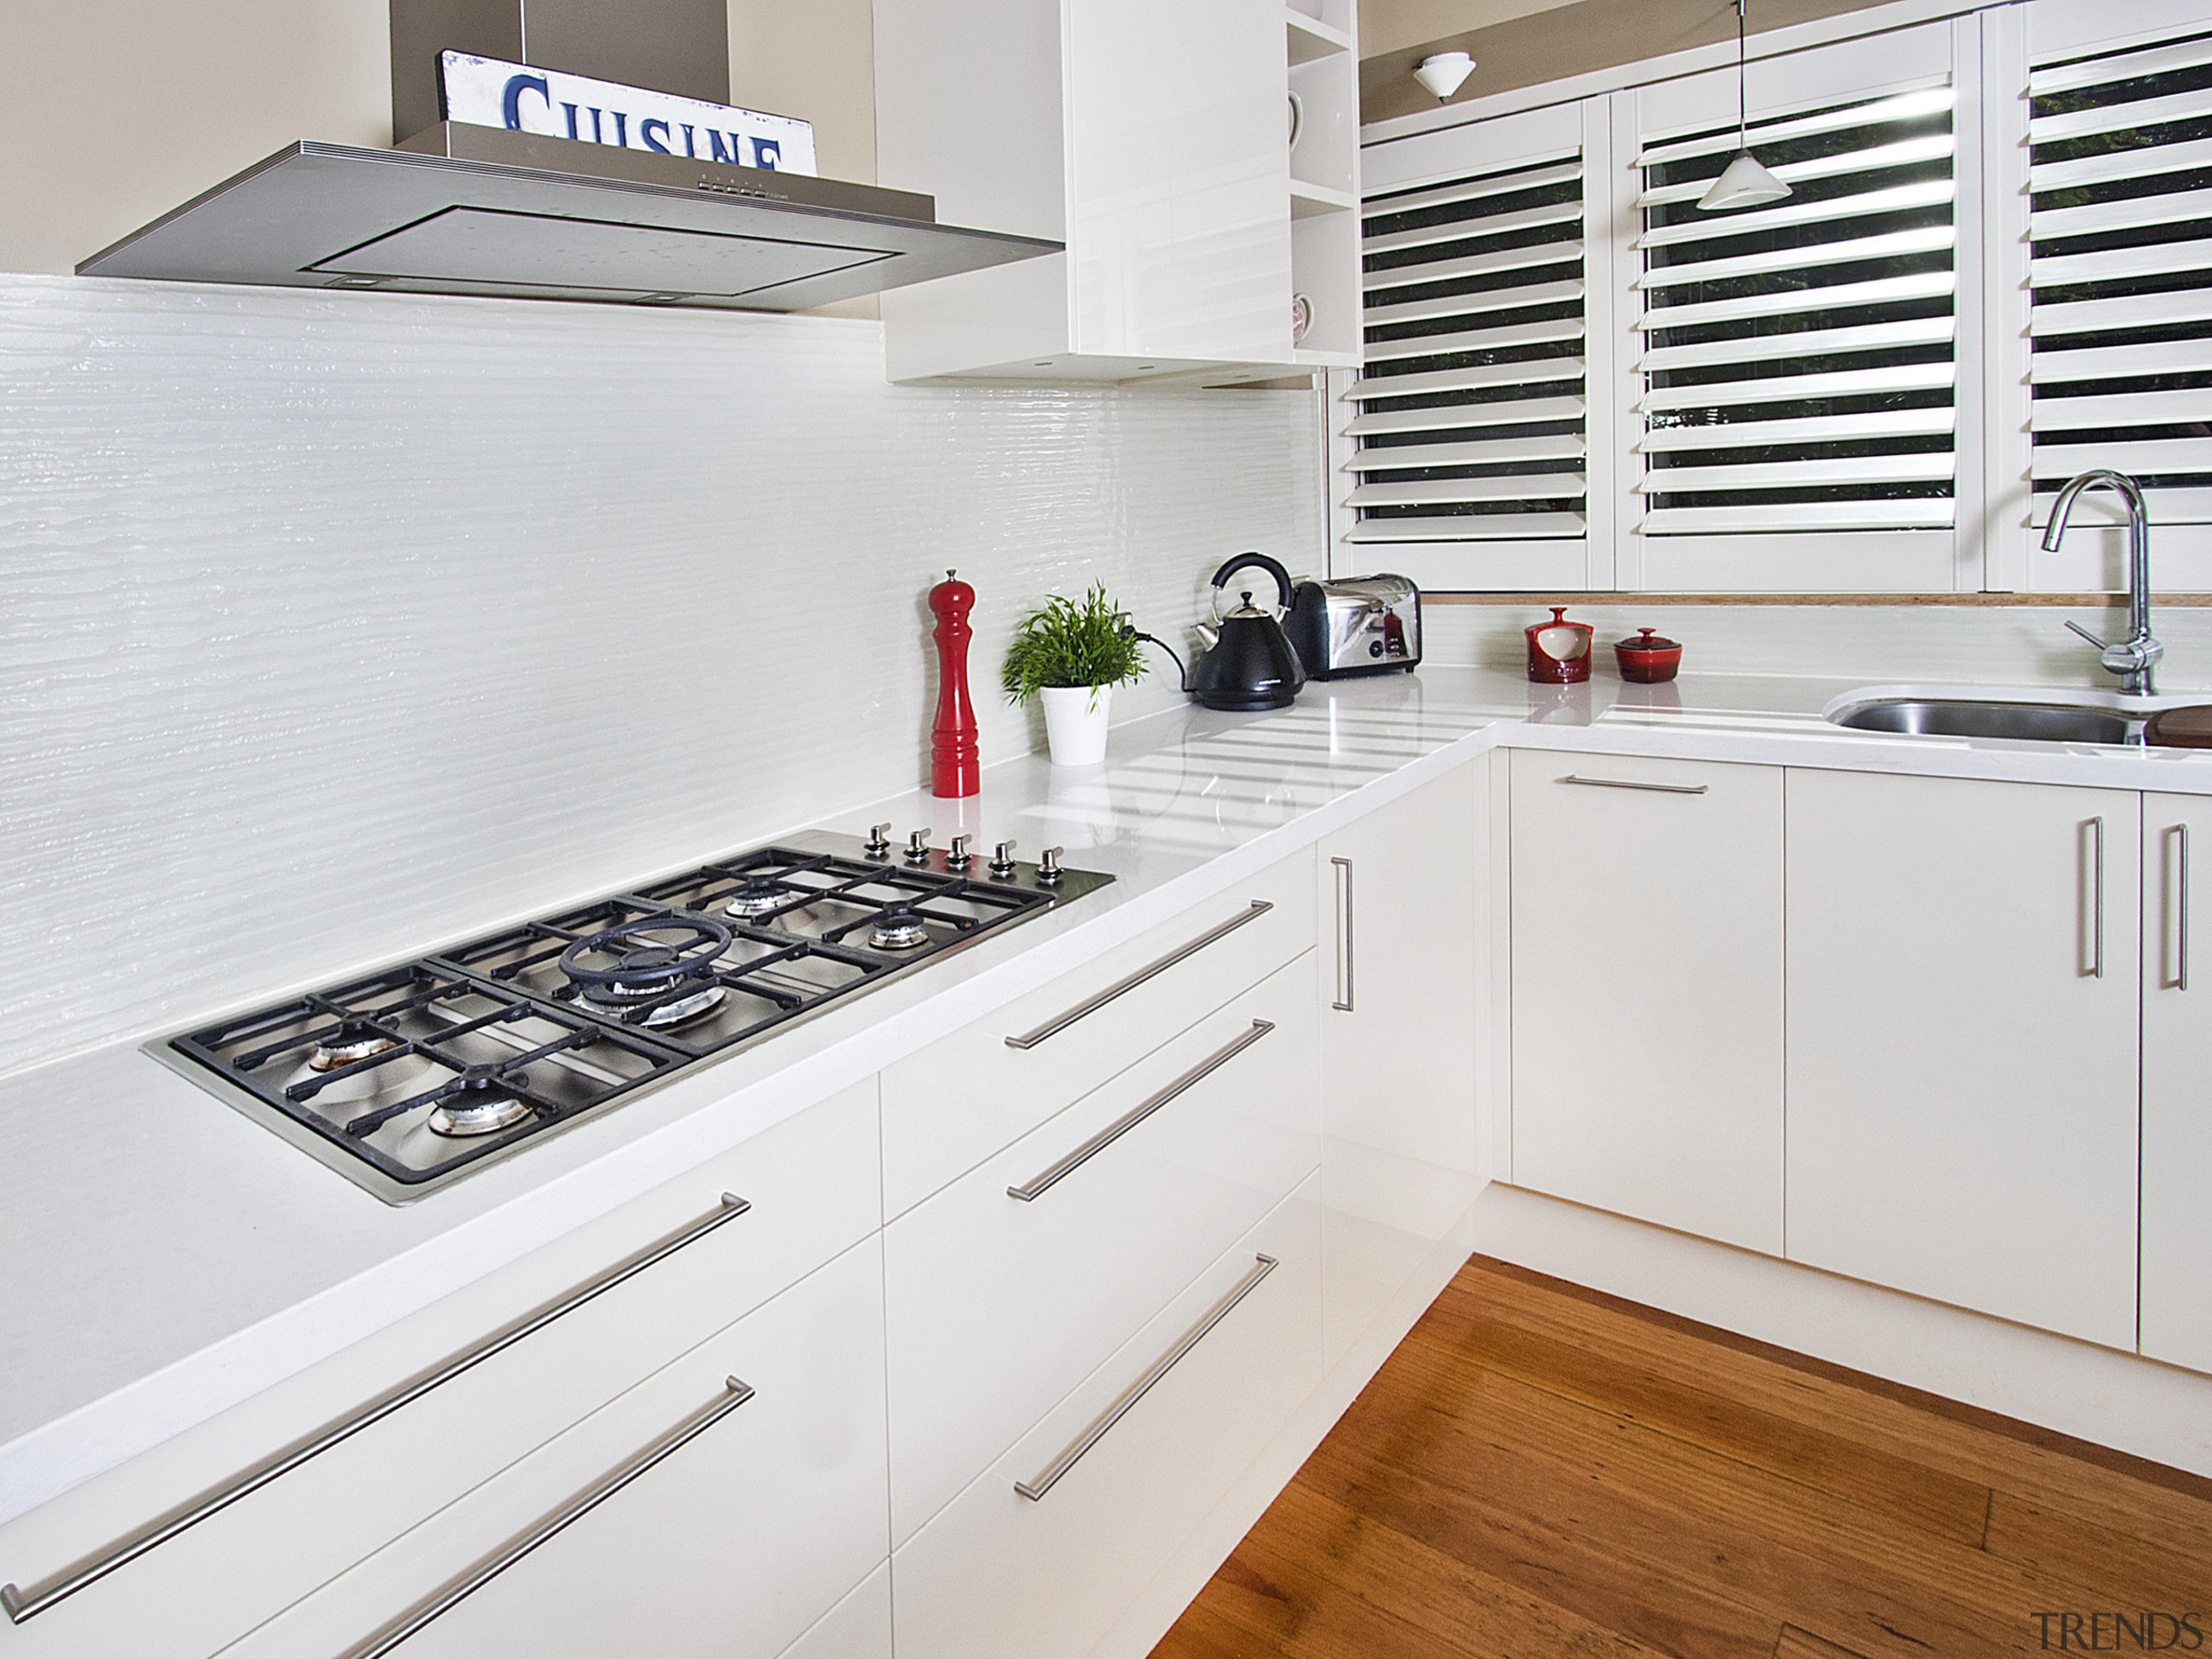 View of kitchen featuring wood floors, white bench cabinetry, countertop, cuisine classique, floor, interior design, kitchen, room, white